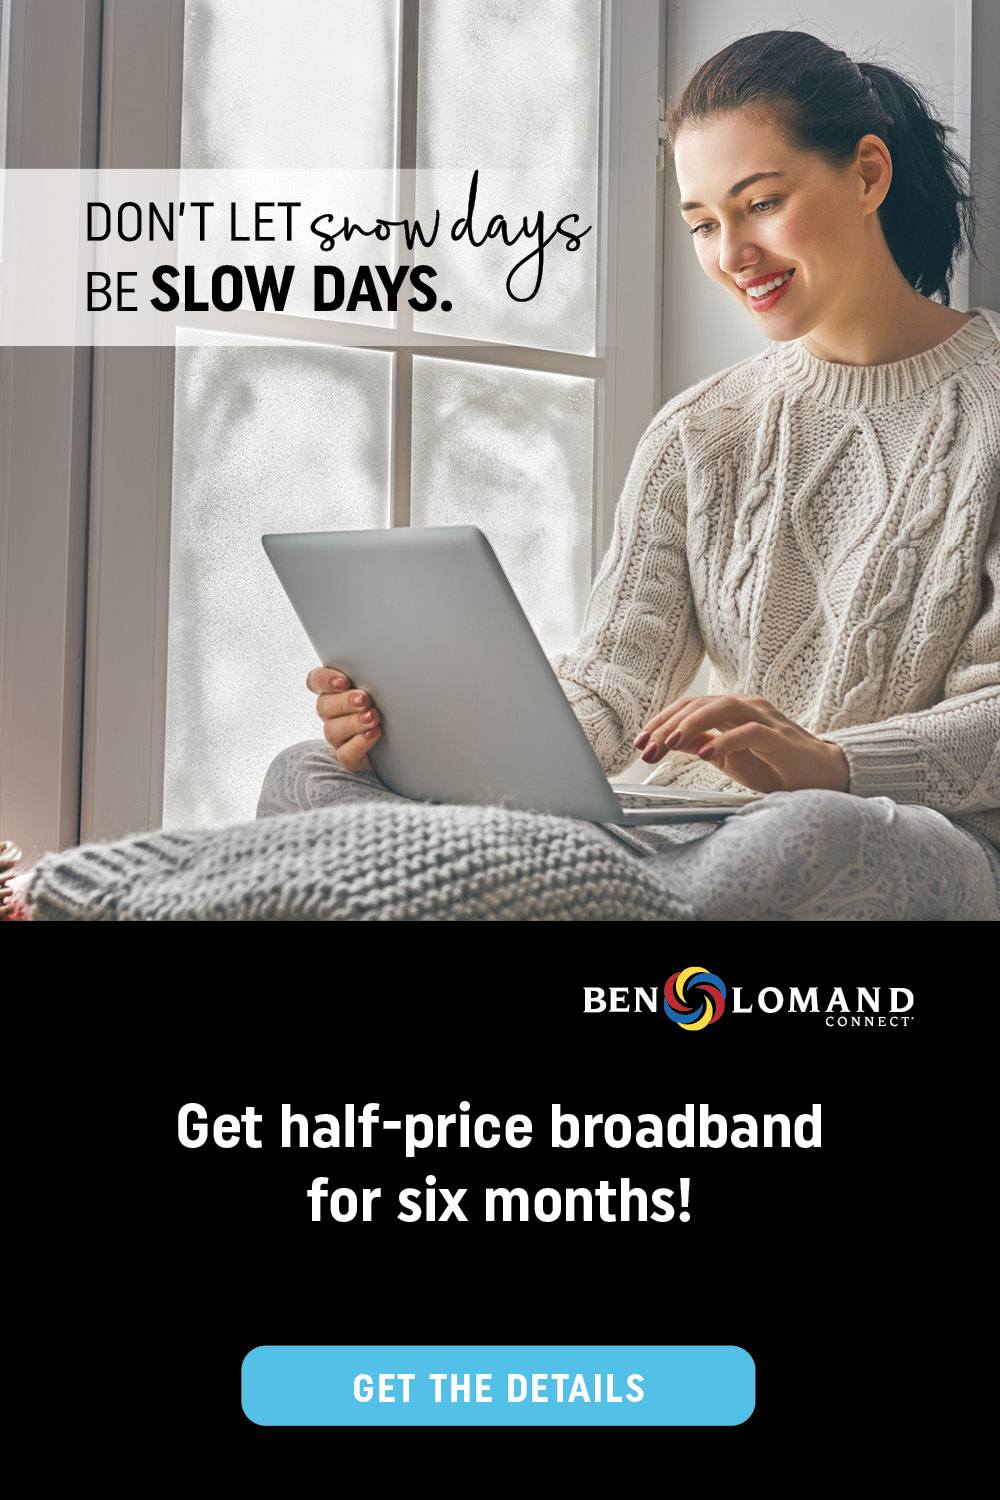 Don't let snow days be slow days. Ben Lomand Connect. Get half-price broadband for six months! Get the details.